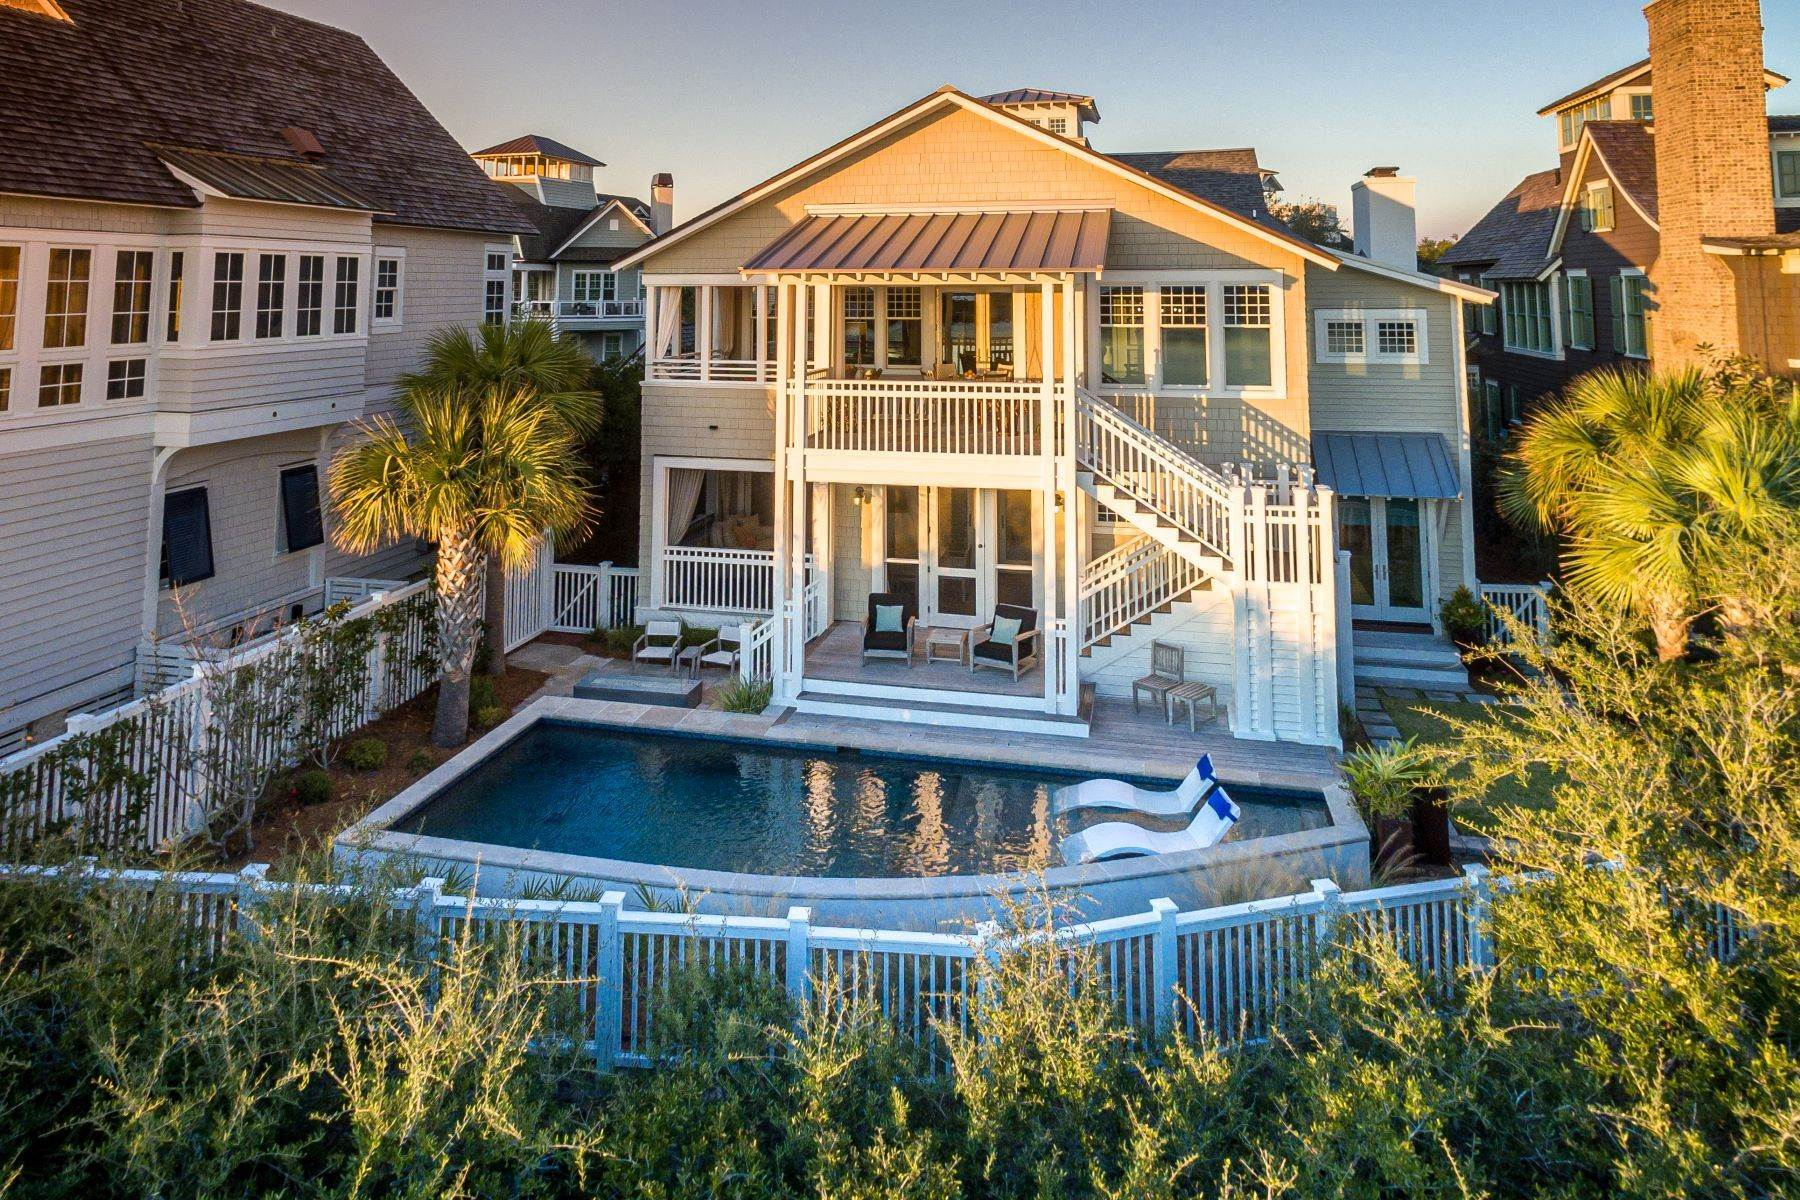 Single Family Homes for Sale at Coastal Retreat and Lakefront Living with Pristine Gulf Views 121 Gulf Bridge Lane Inlet Beach, Florida 32461 United States